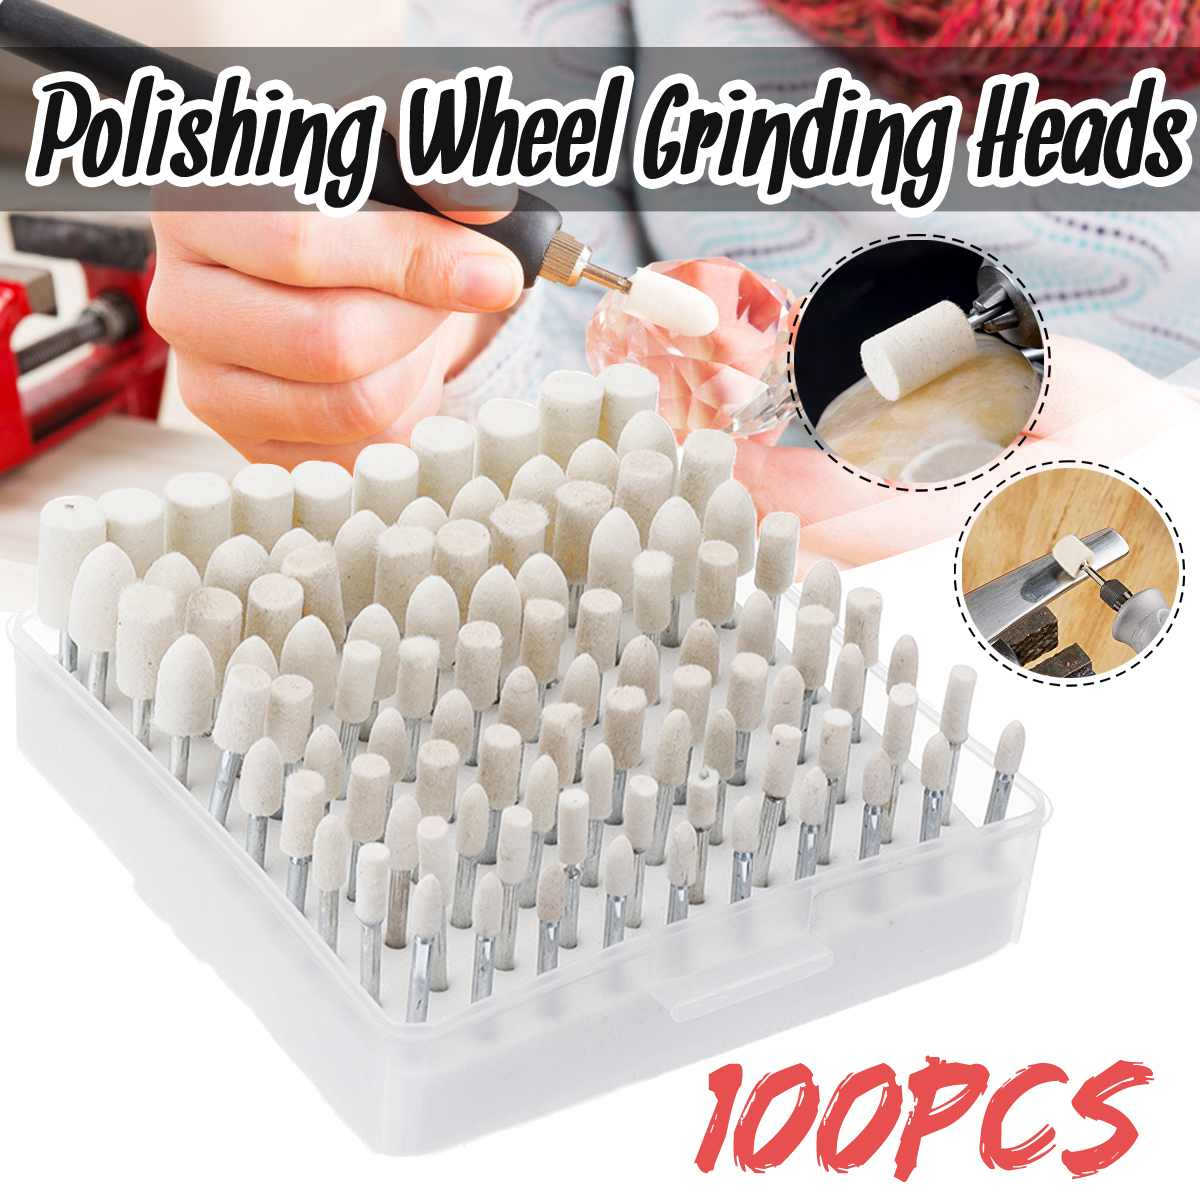 100 Pcs Wool Felt Grinding Heads 4/5/6/8/10mm Assorted Dremel Mini Drill Felt Wheel For Metal Polish